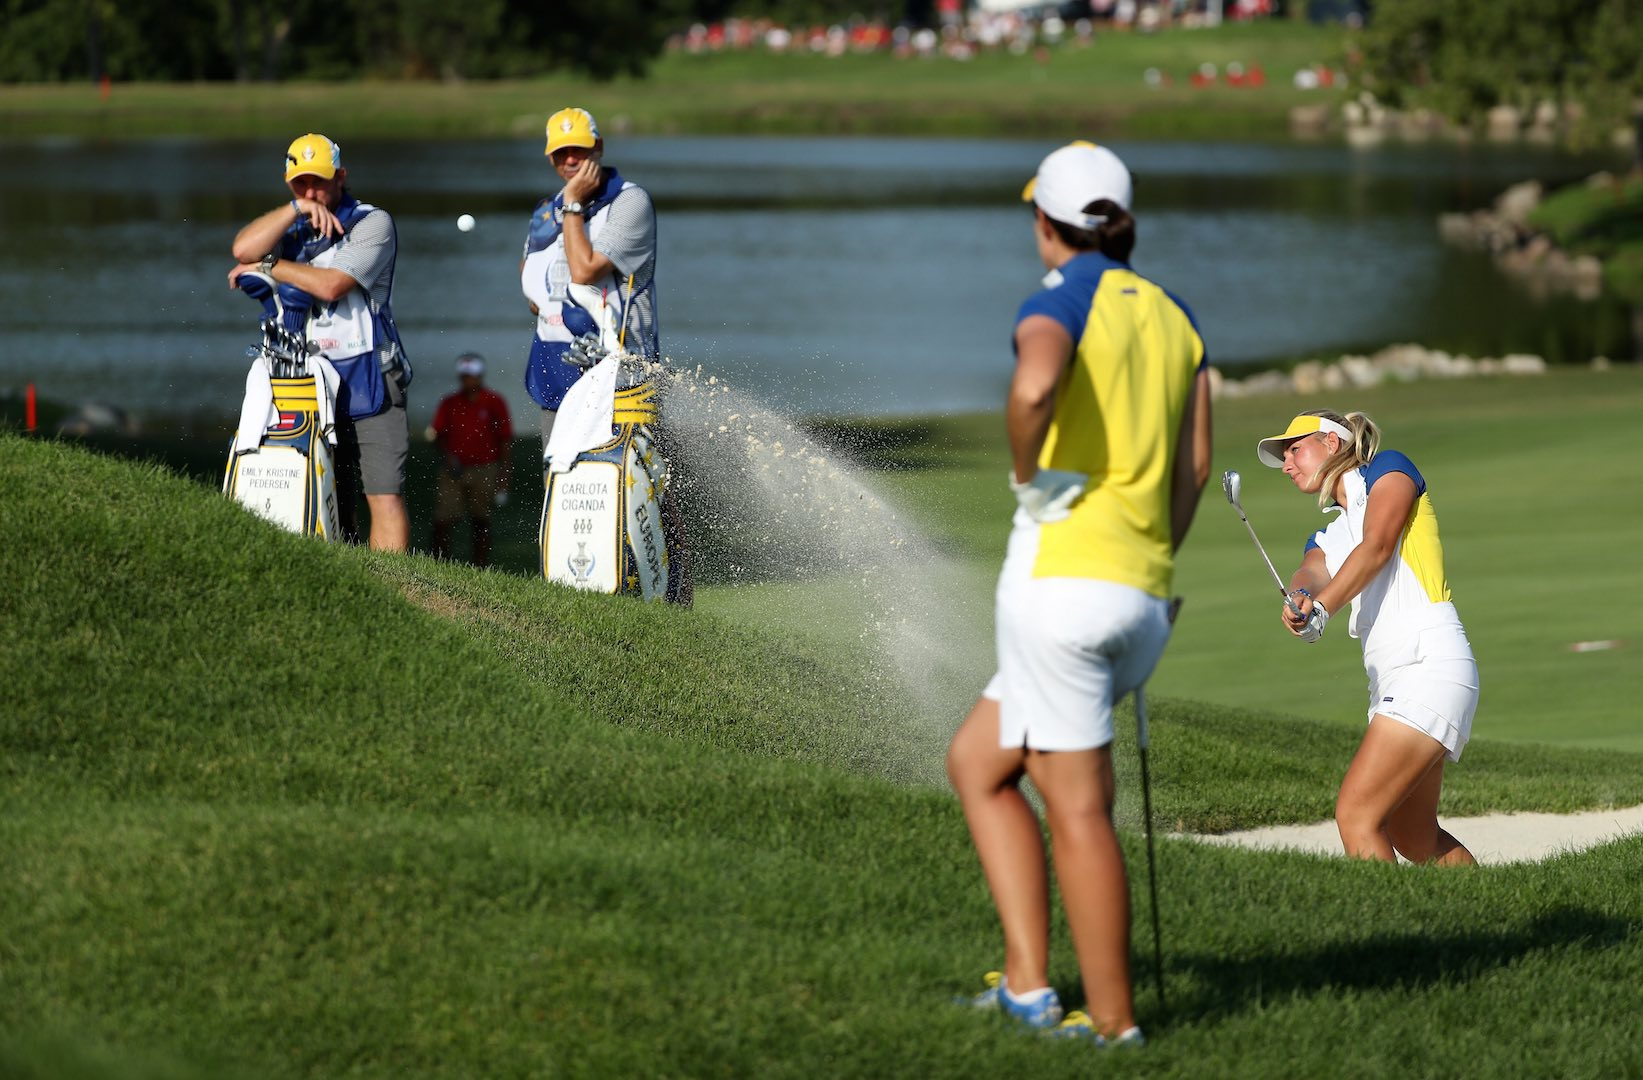 Solheim Cup Saturday 4somes pairings & tee times